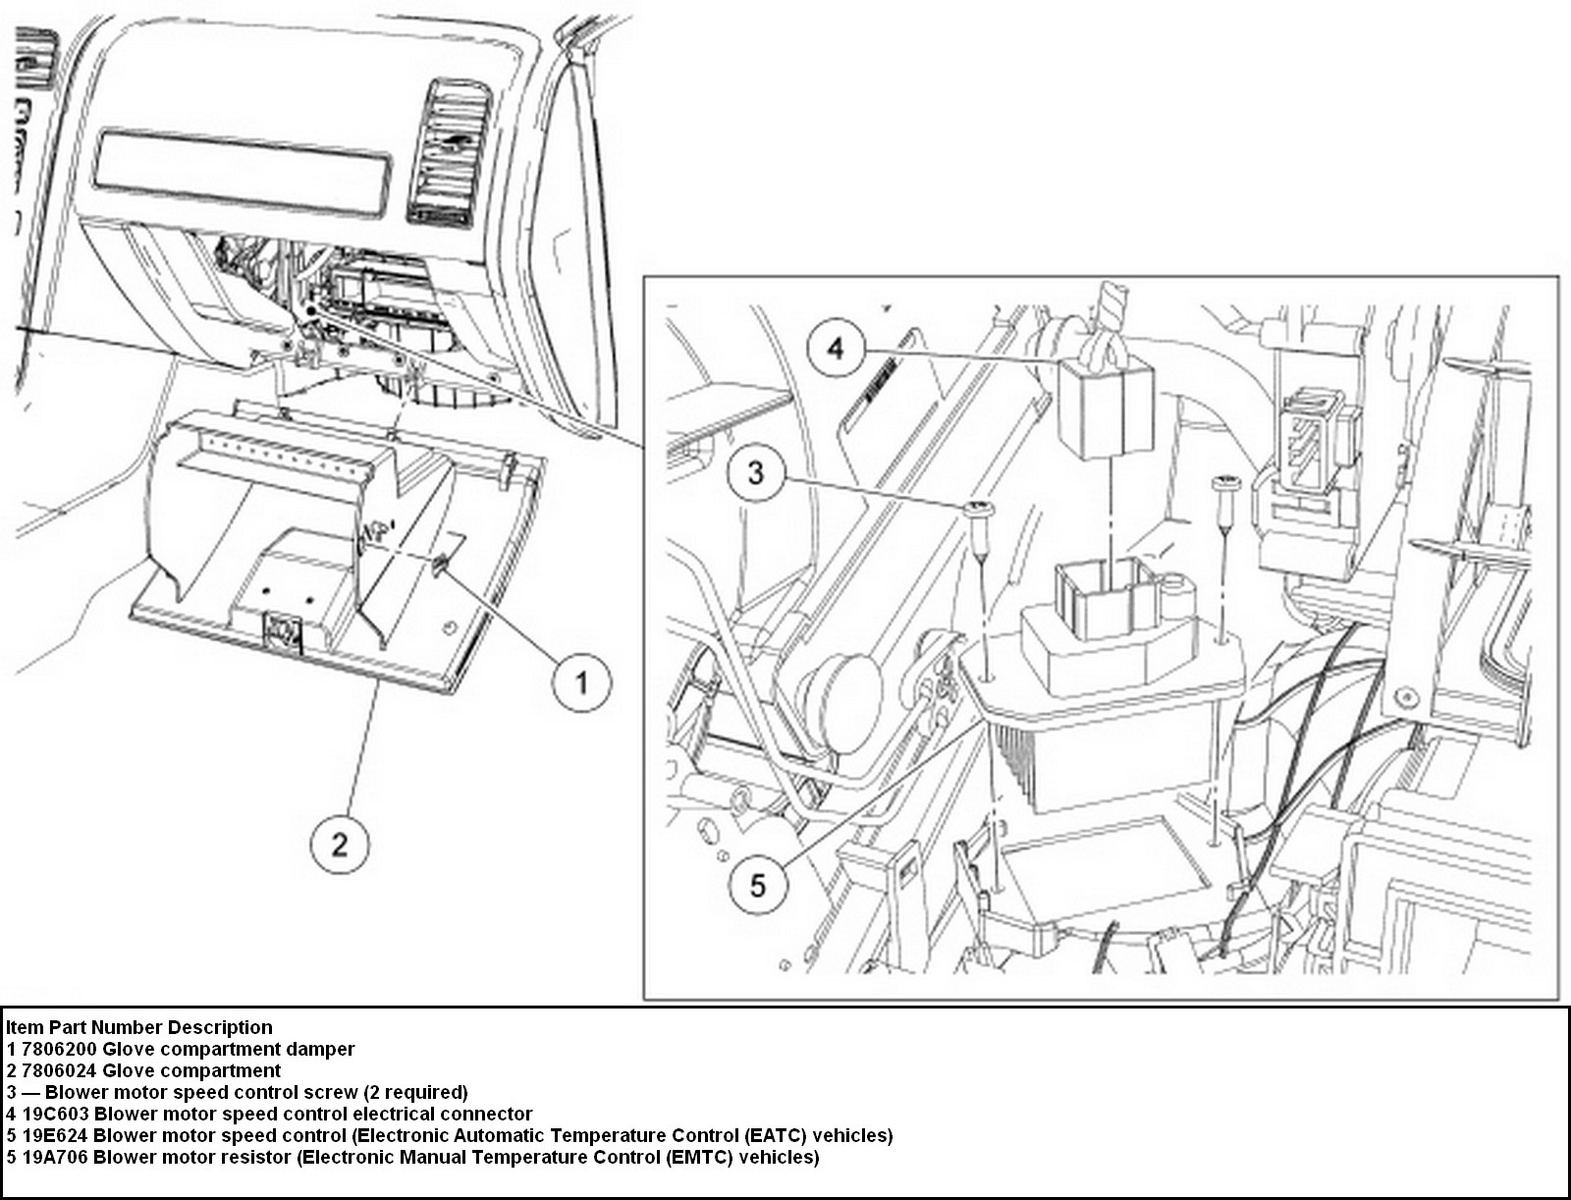 pic 2289865381668256363 1600x1200 ford edge questions how do you remove and replace install a 2012 ford edge fuse box diagram at creativeand.co